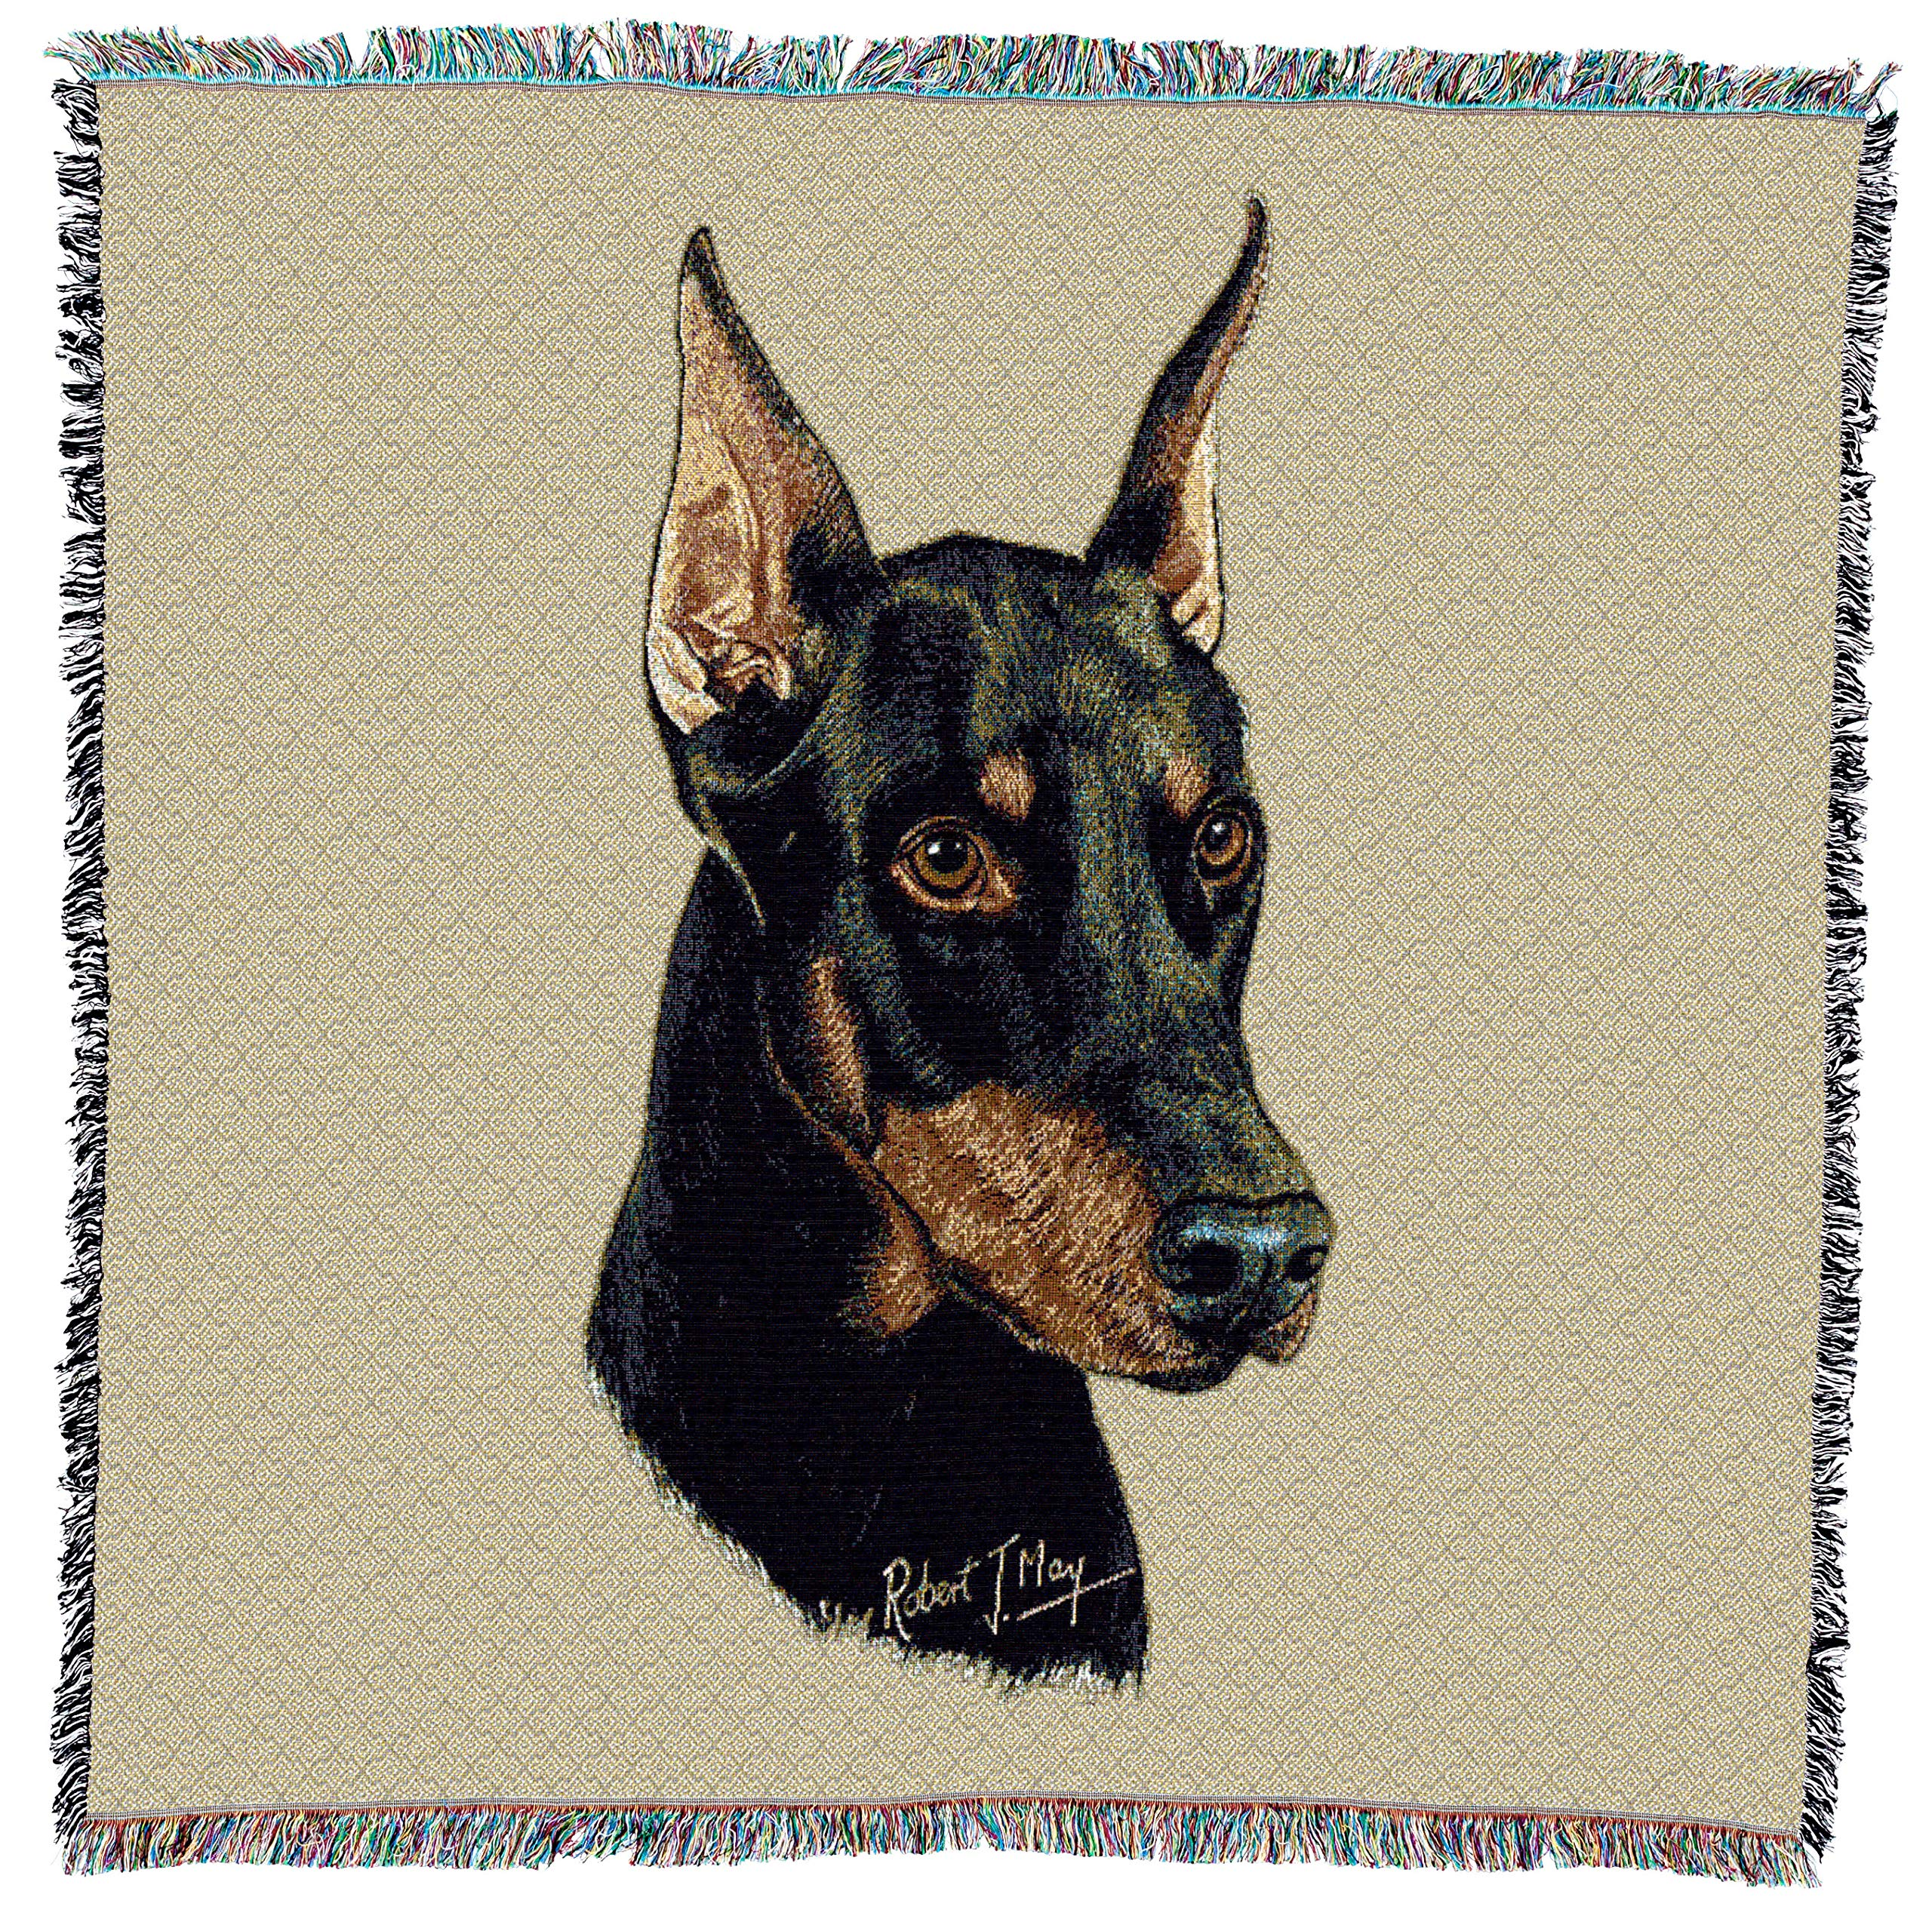 Pure Country Weavers - Doberman Pinscher Woven Throw Blanket with Fringe Cotton. USA Size 54x54